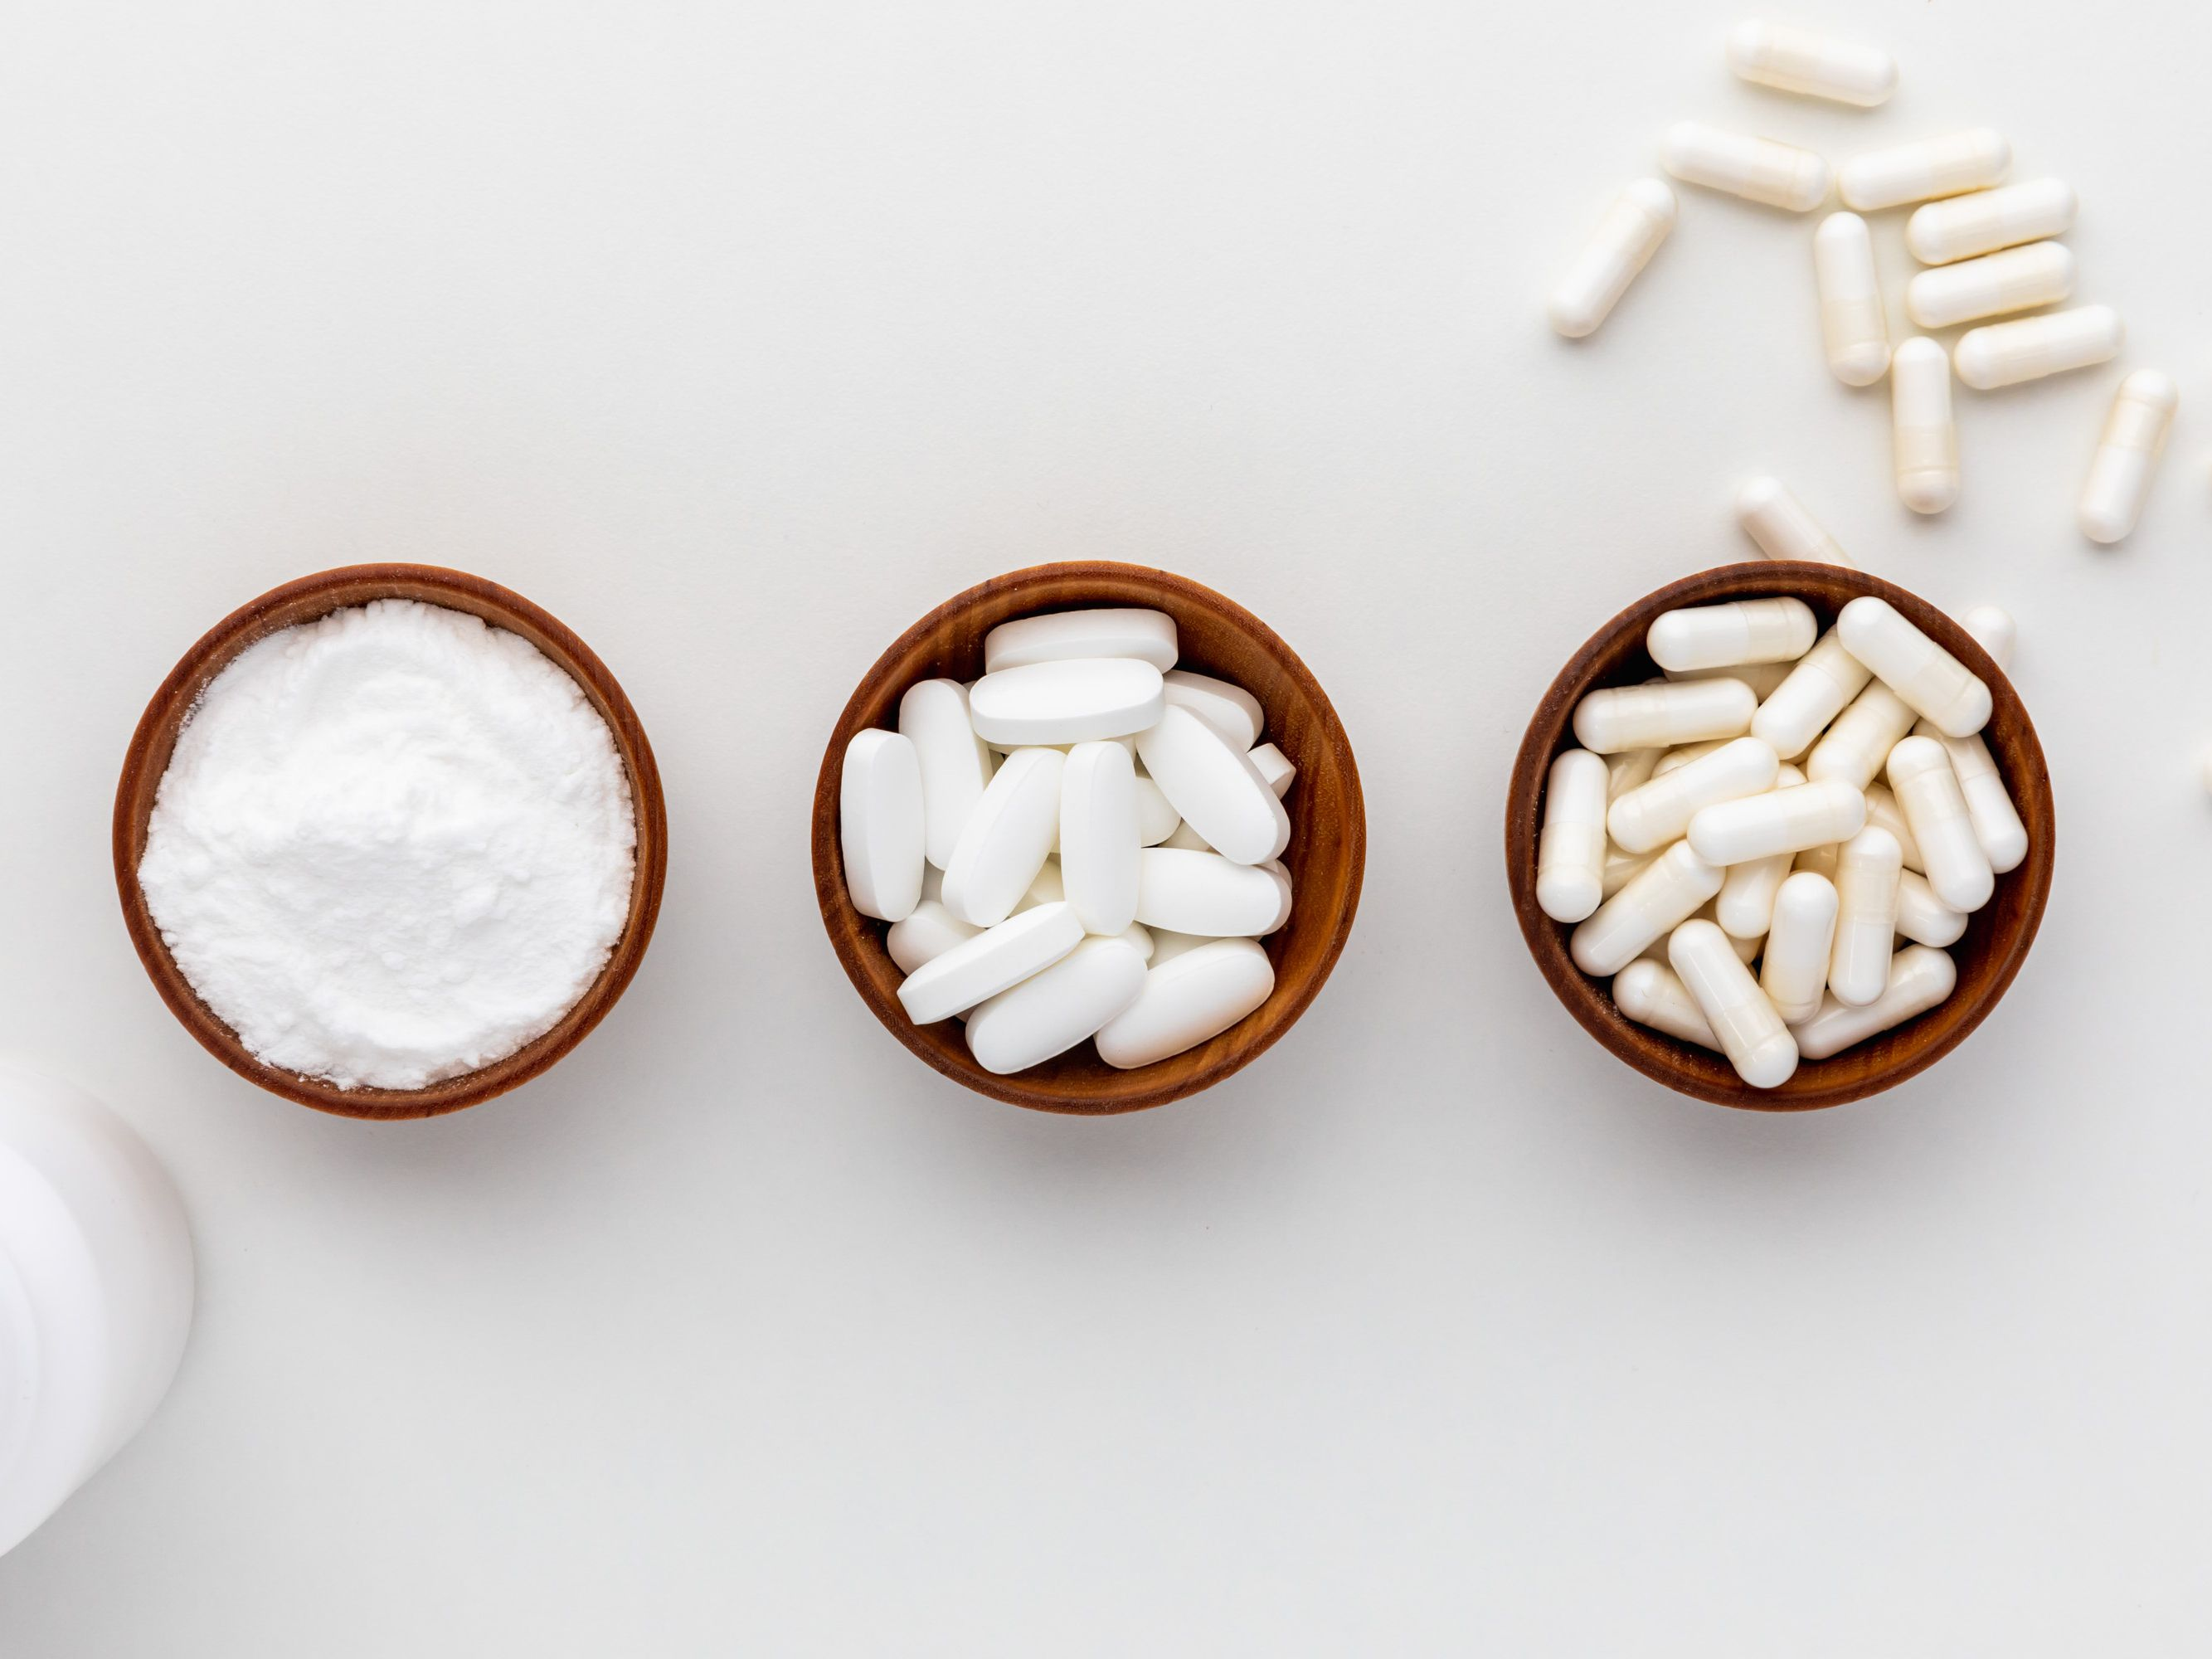 N Acetylcysteine Benefits, Side Effects, Dosage, Interactions